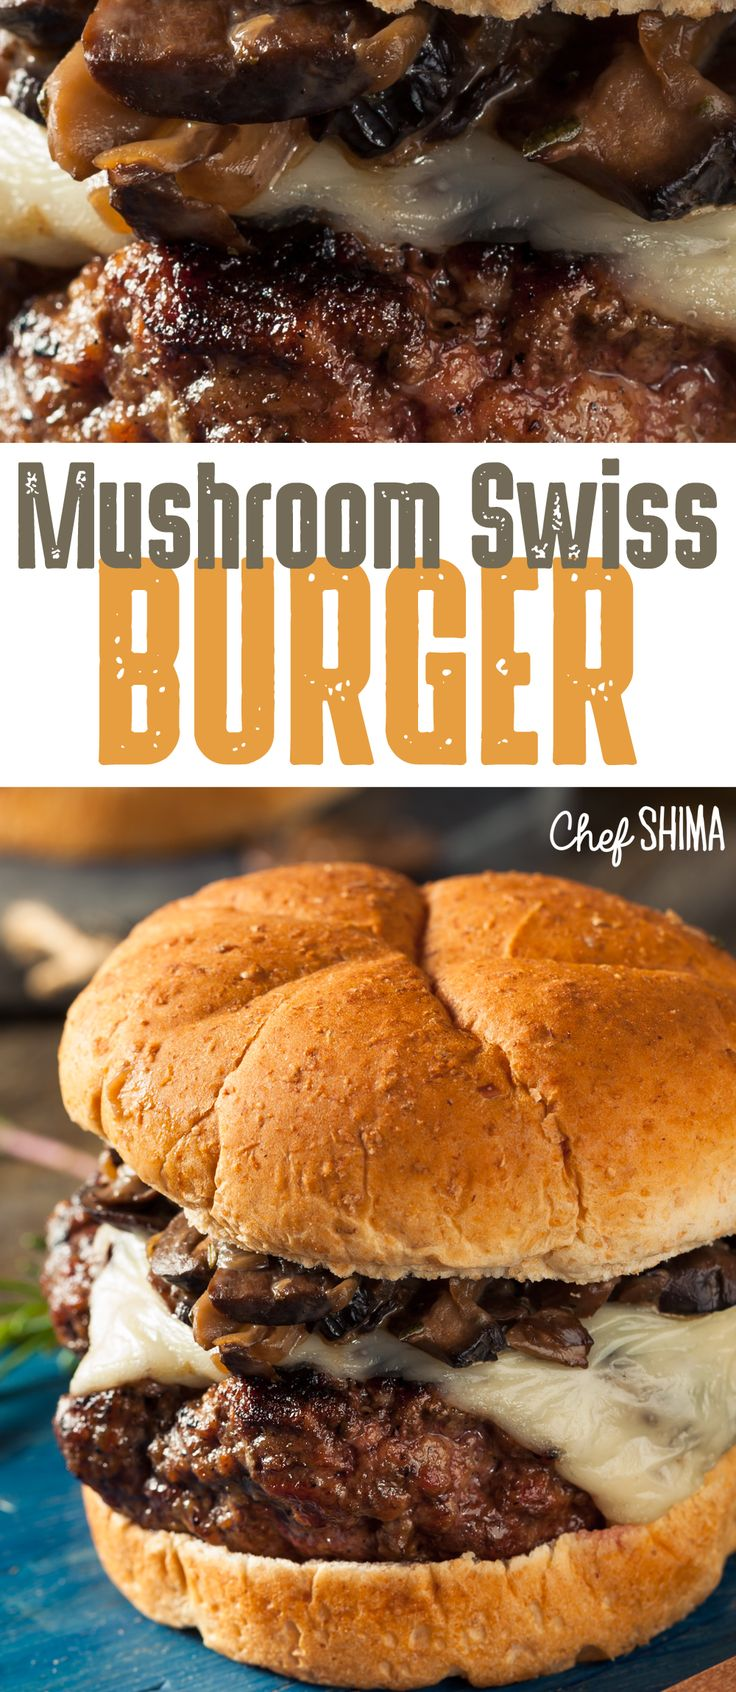 Mushroom Swiss Burger | This burger is so JUICY and TASTY! Better than what you get at a restaurant.